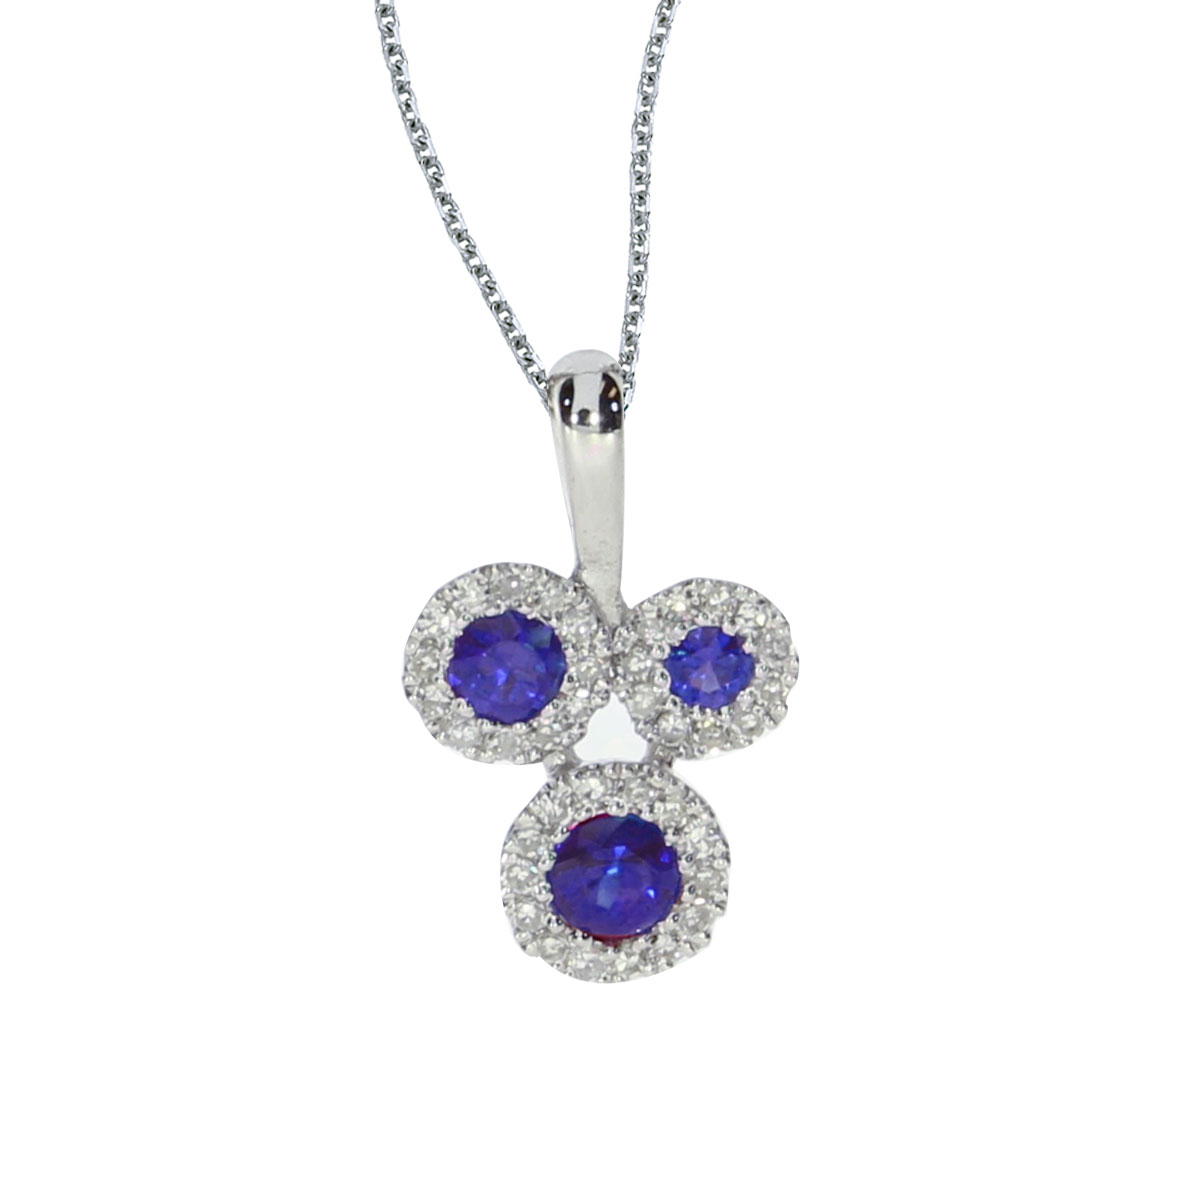 This 14k white gold pendant contains three 2.8 mm sapphires surrounded by .07 carats of shimmerin...